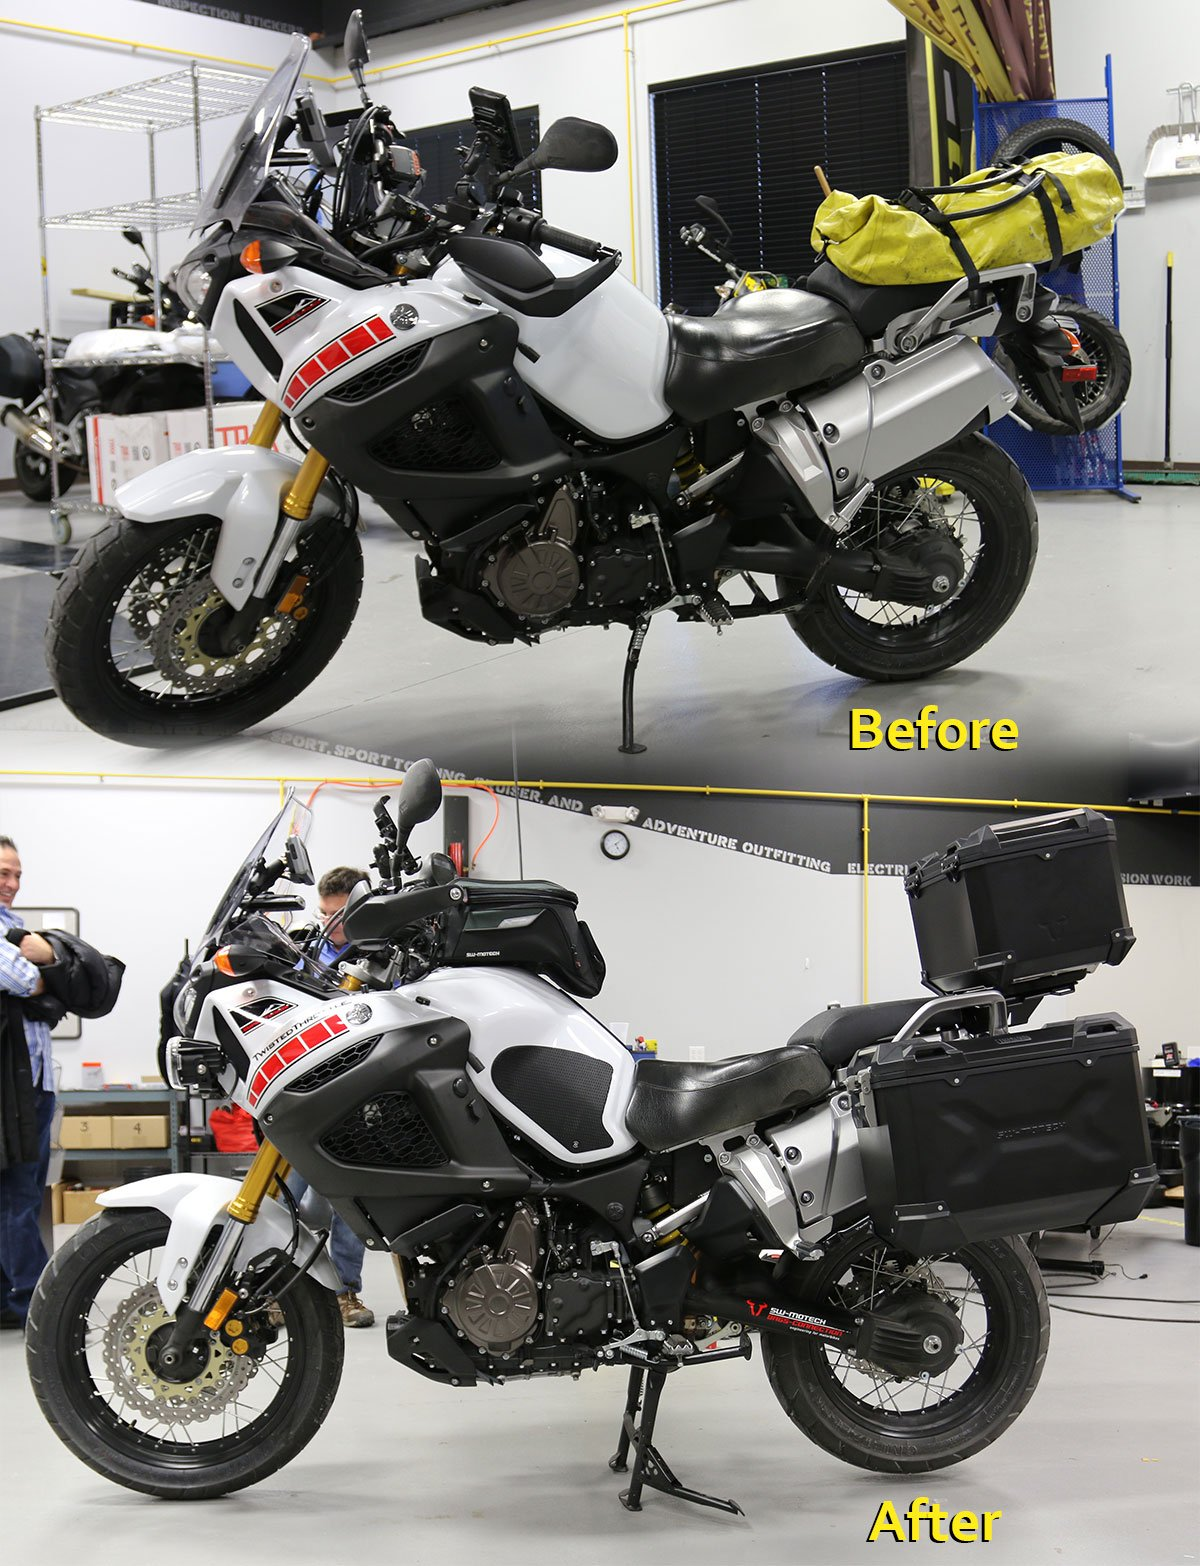 Yamaha Super Tenere Before After